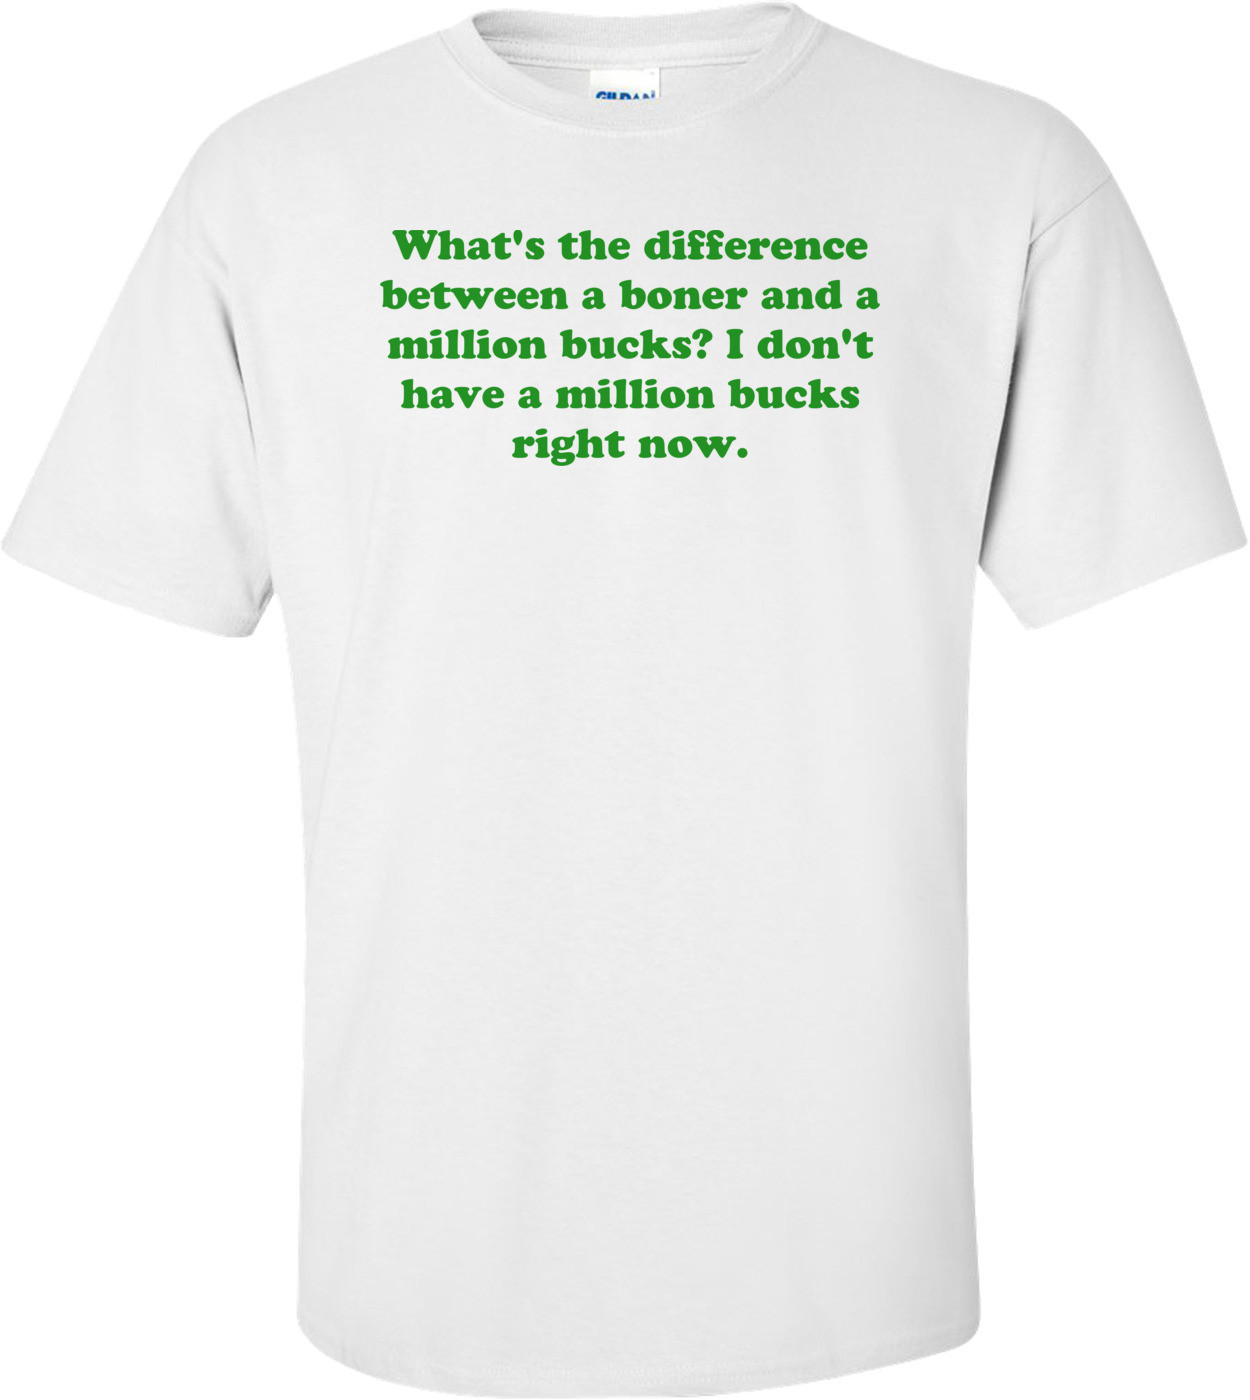 What's the difference between a boner and a million bucks? I don't have a million bucks right now. Shirt